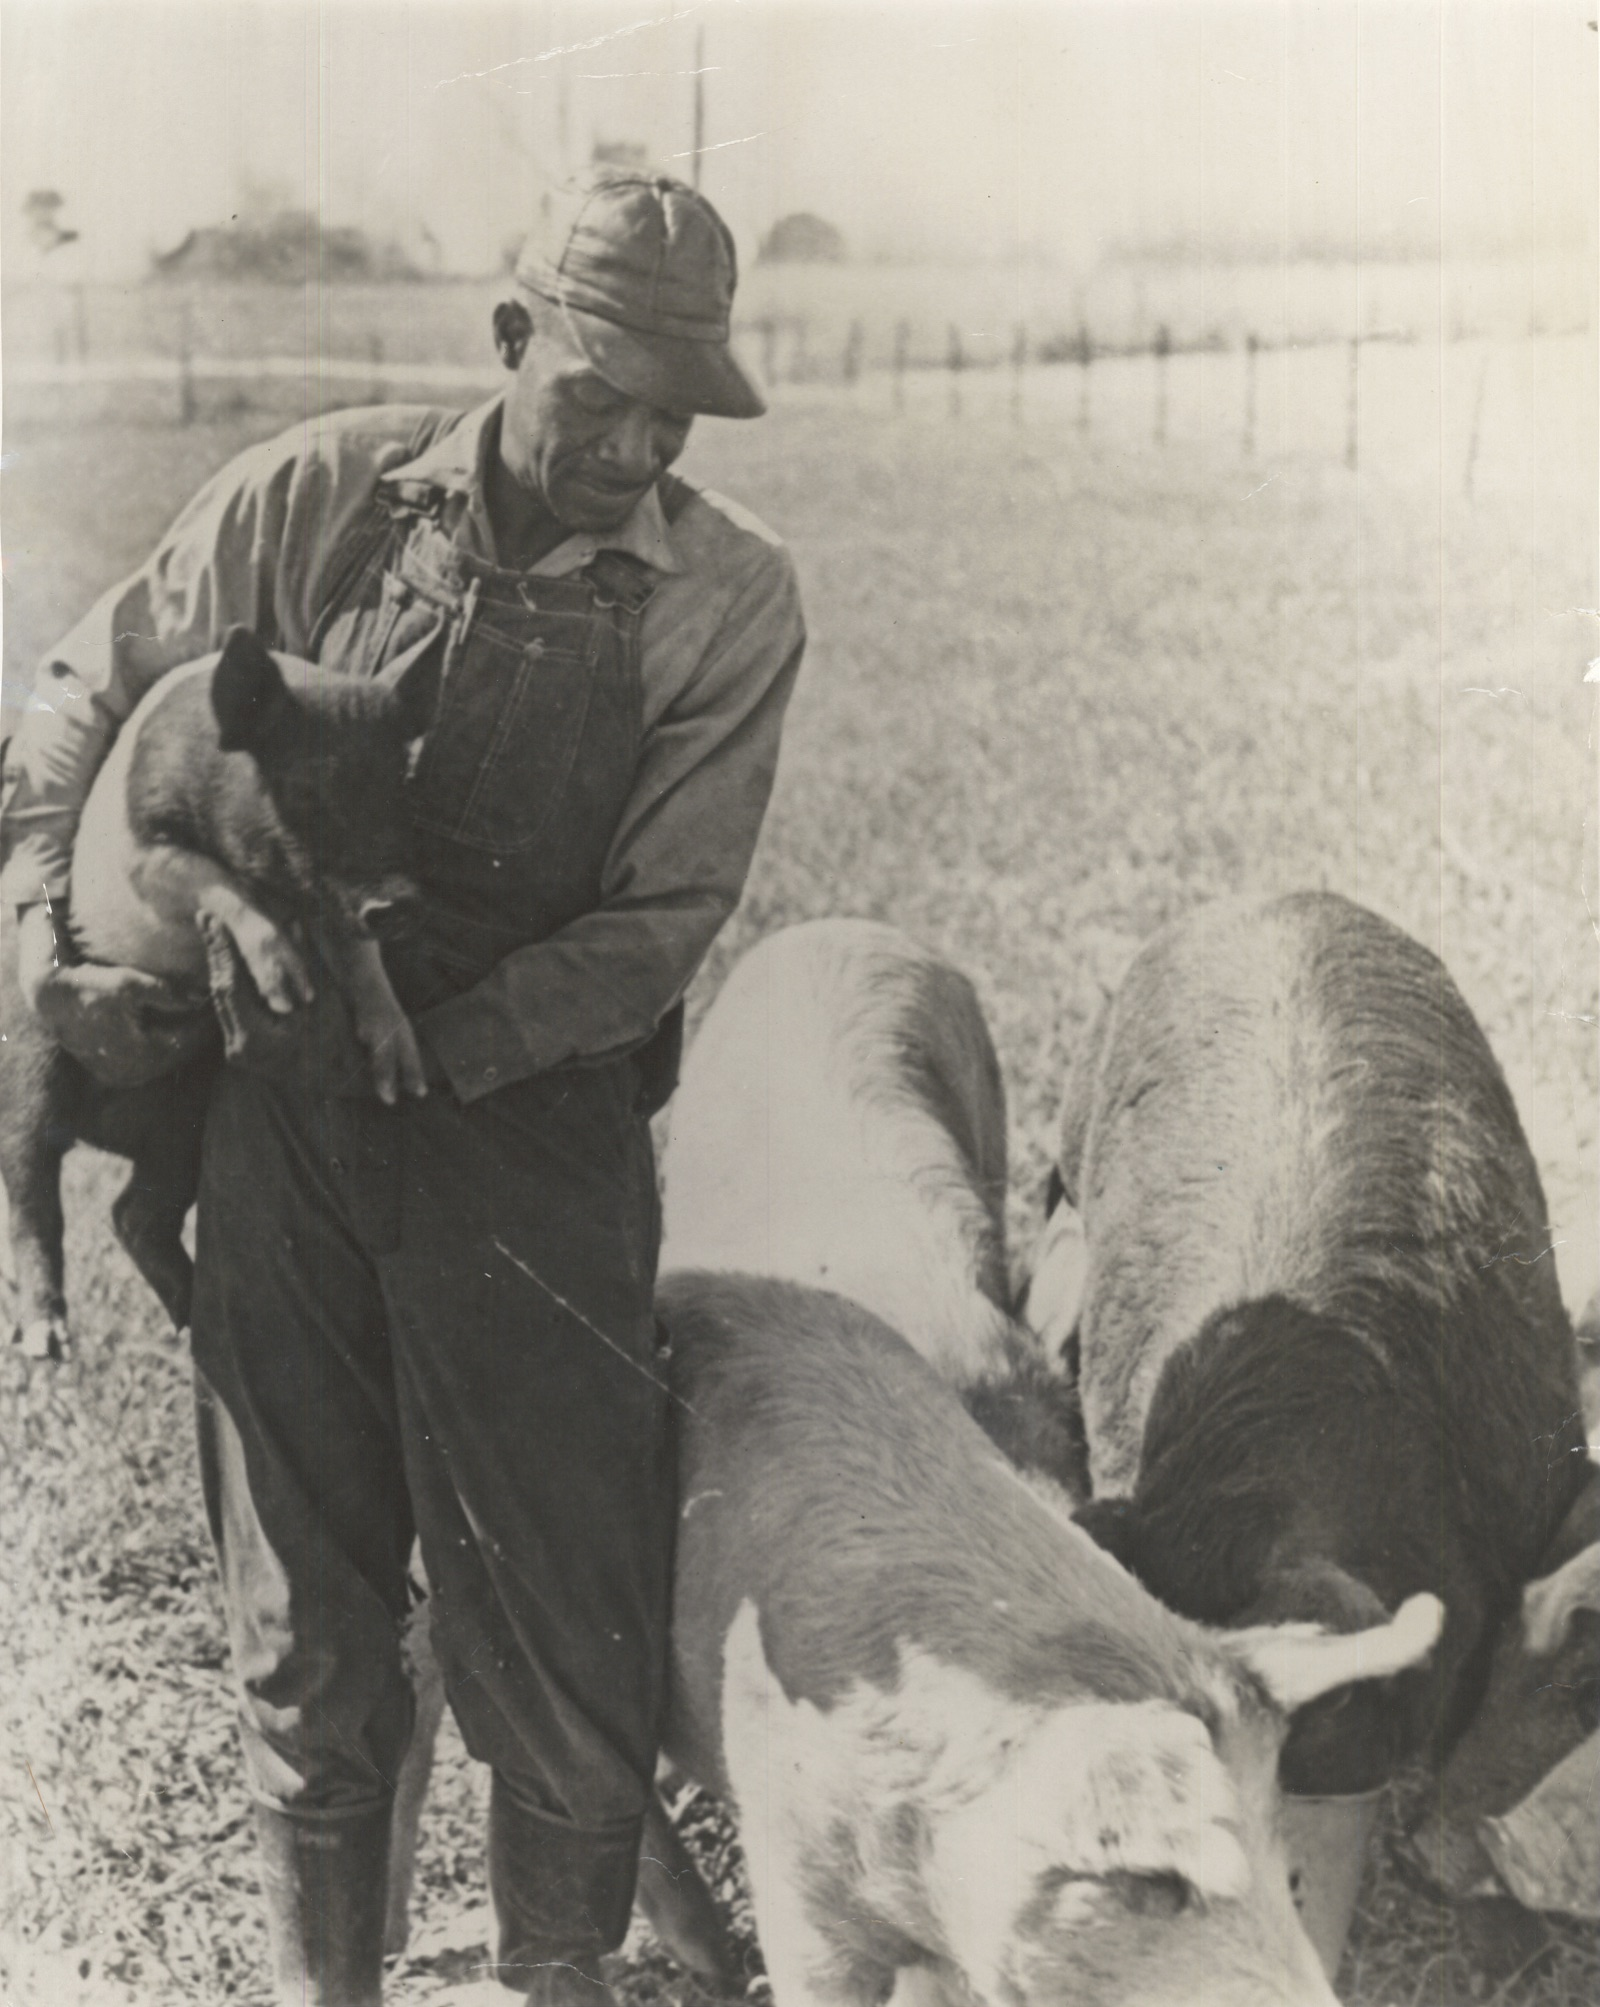 A farmer tends to his pigs in Prentiss, Mississippi